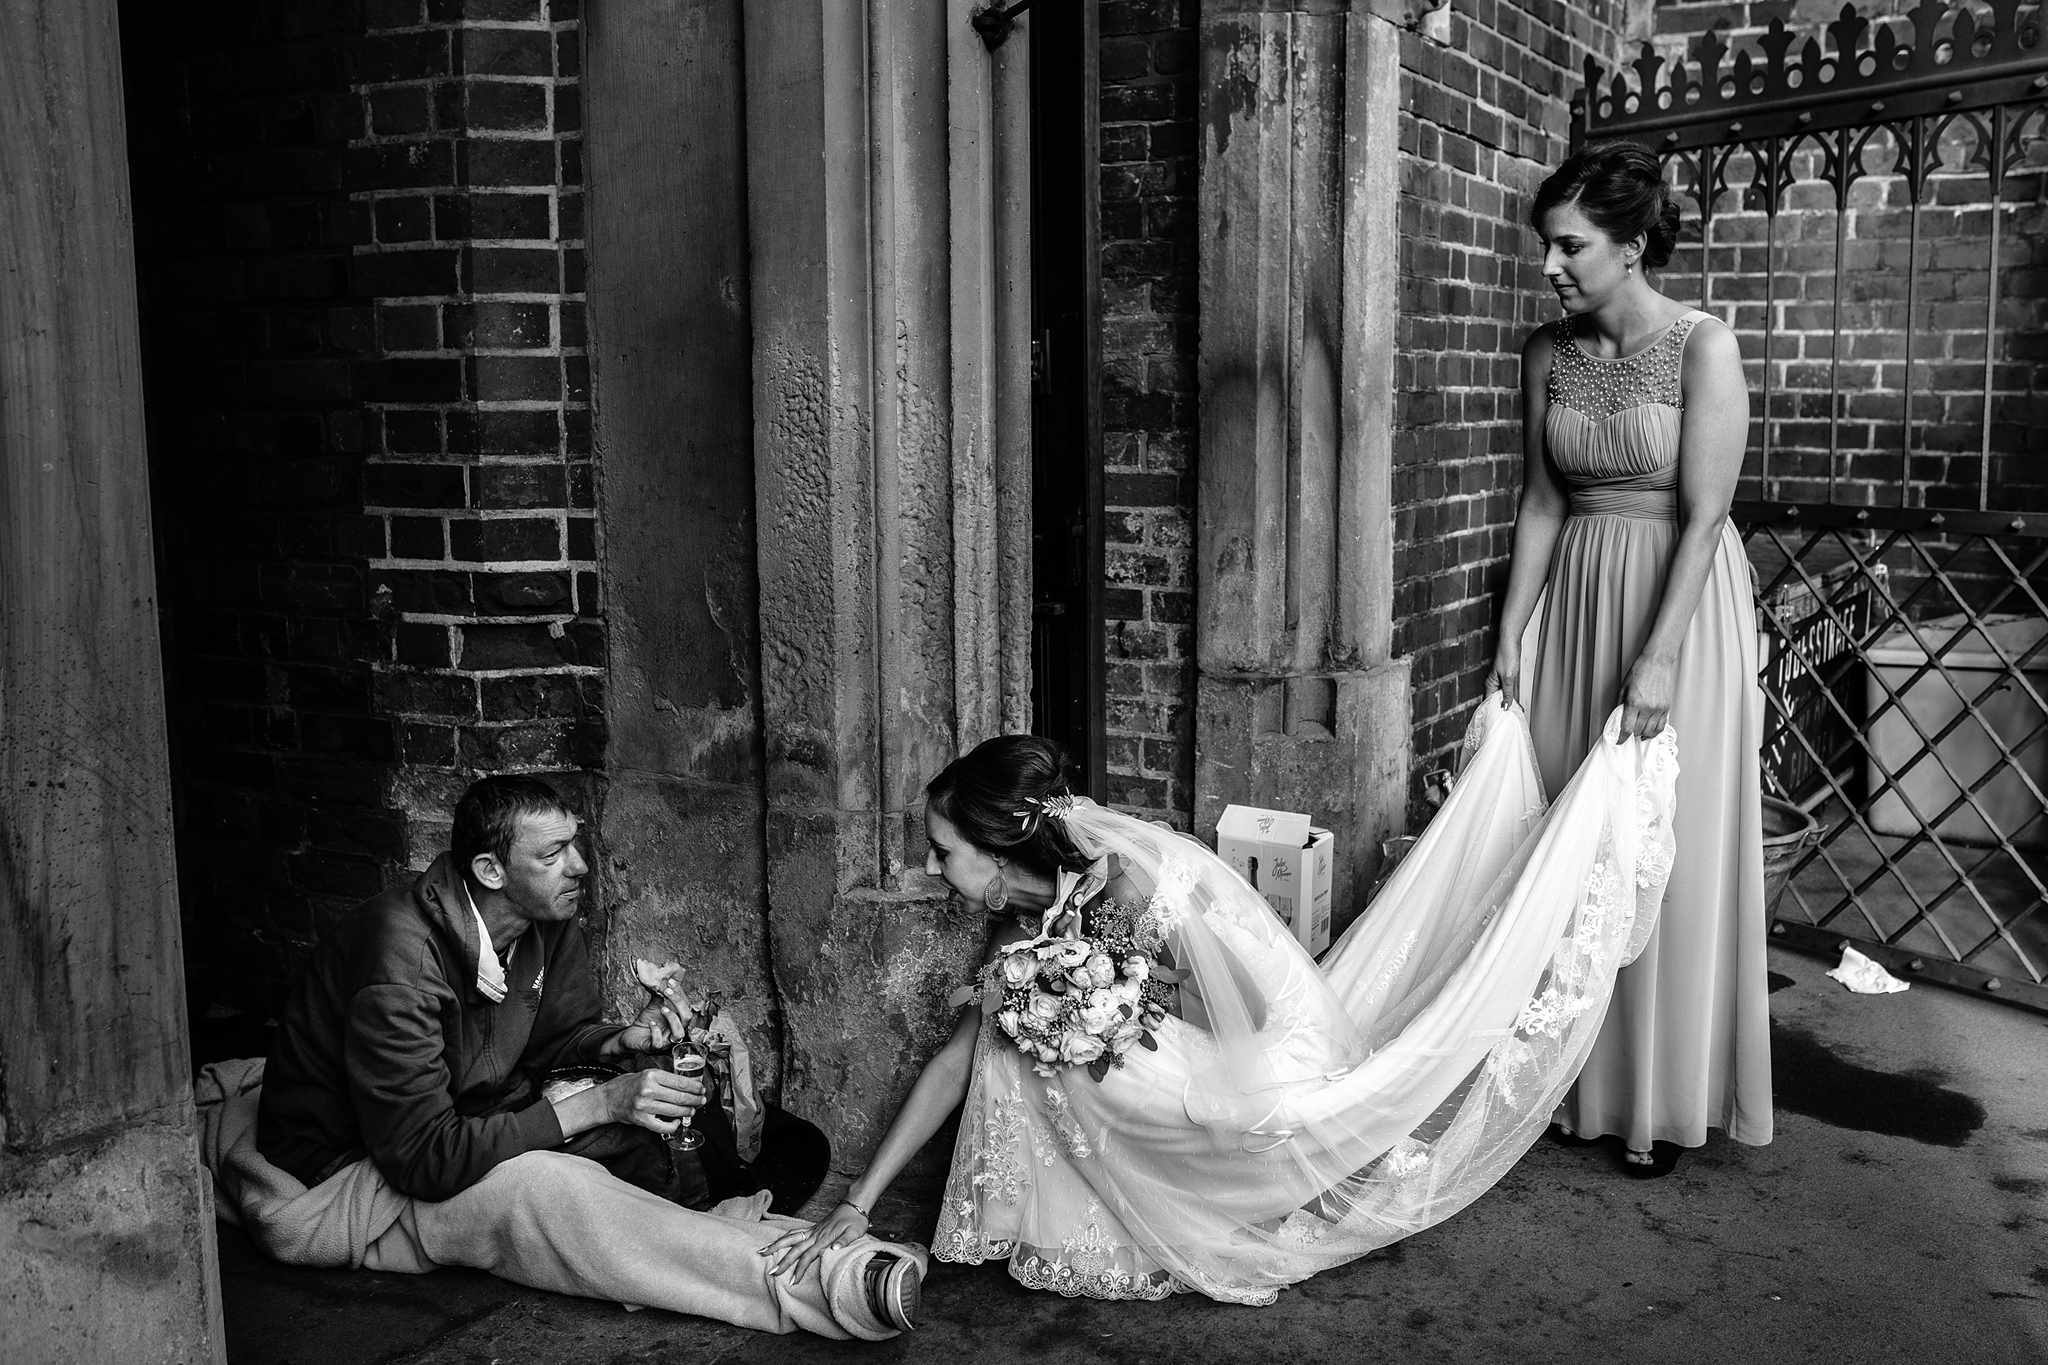 50 Best Documentary Wedding Photos of the Decade, photo by Yves Schepers